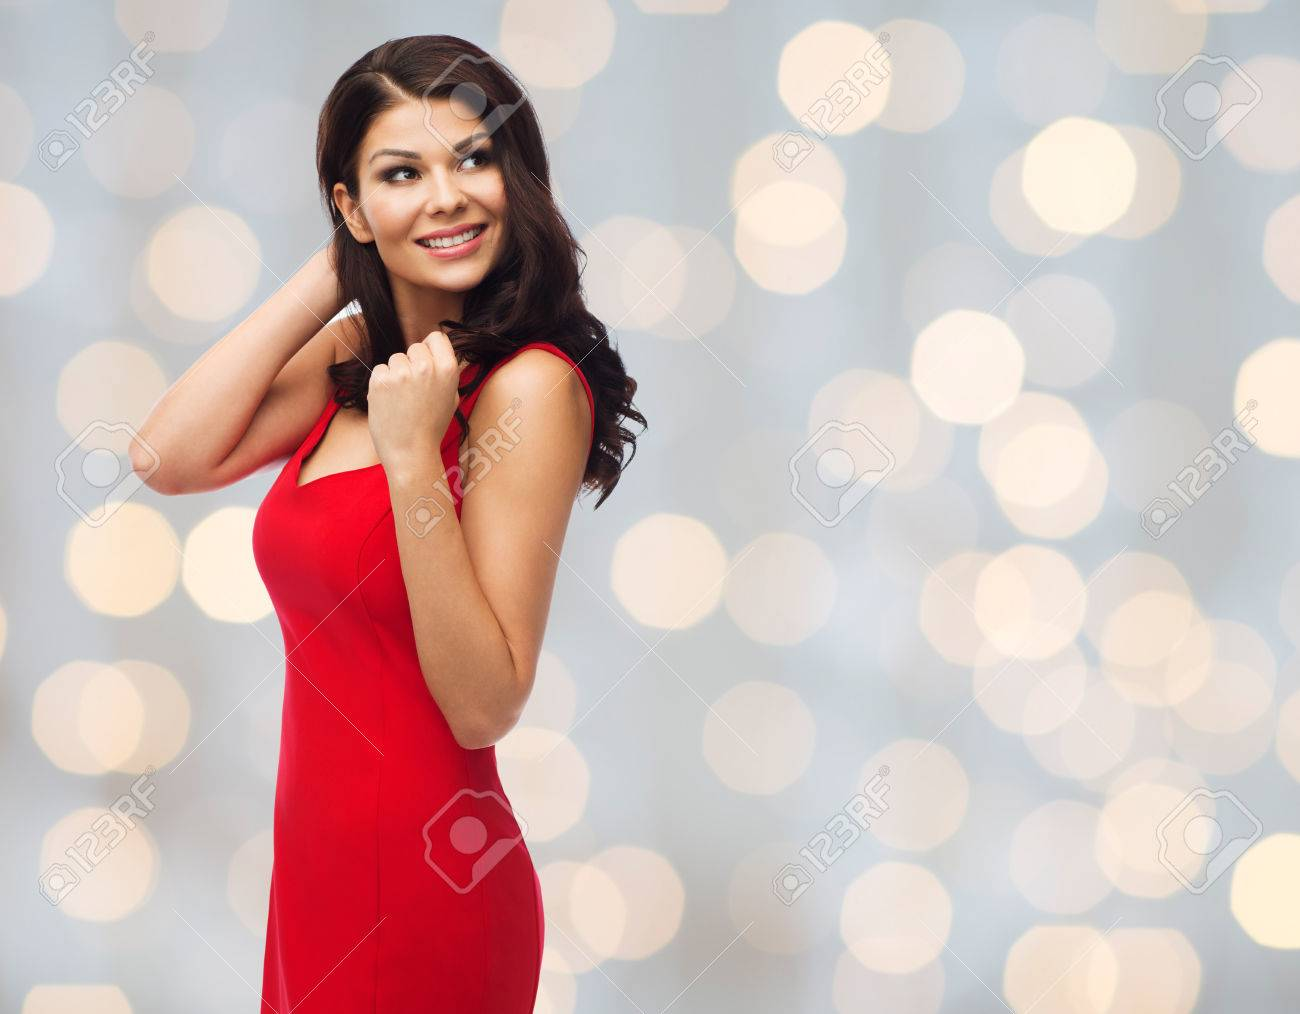 Red dress for holidays